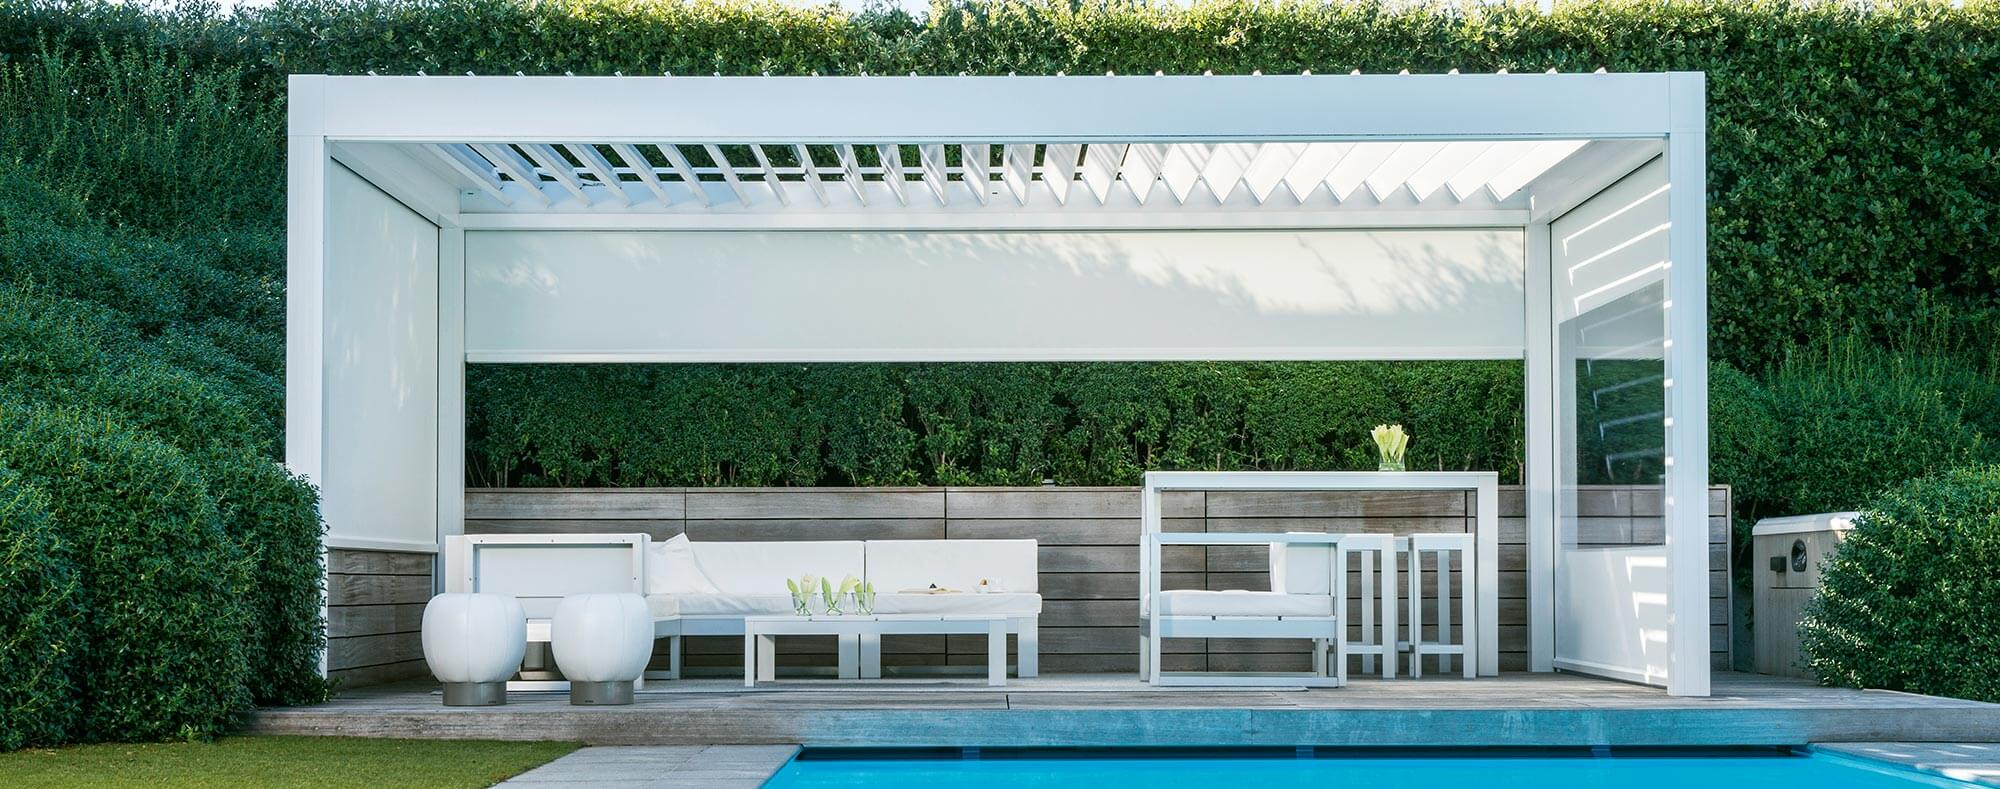 Electric sunshade by the pool